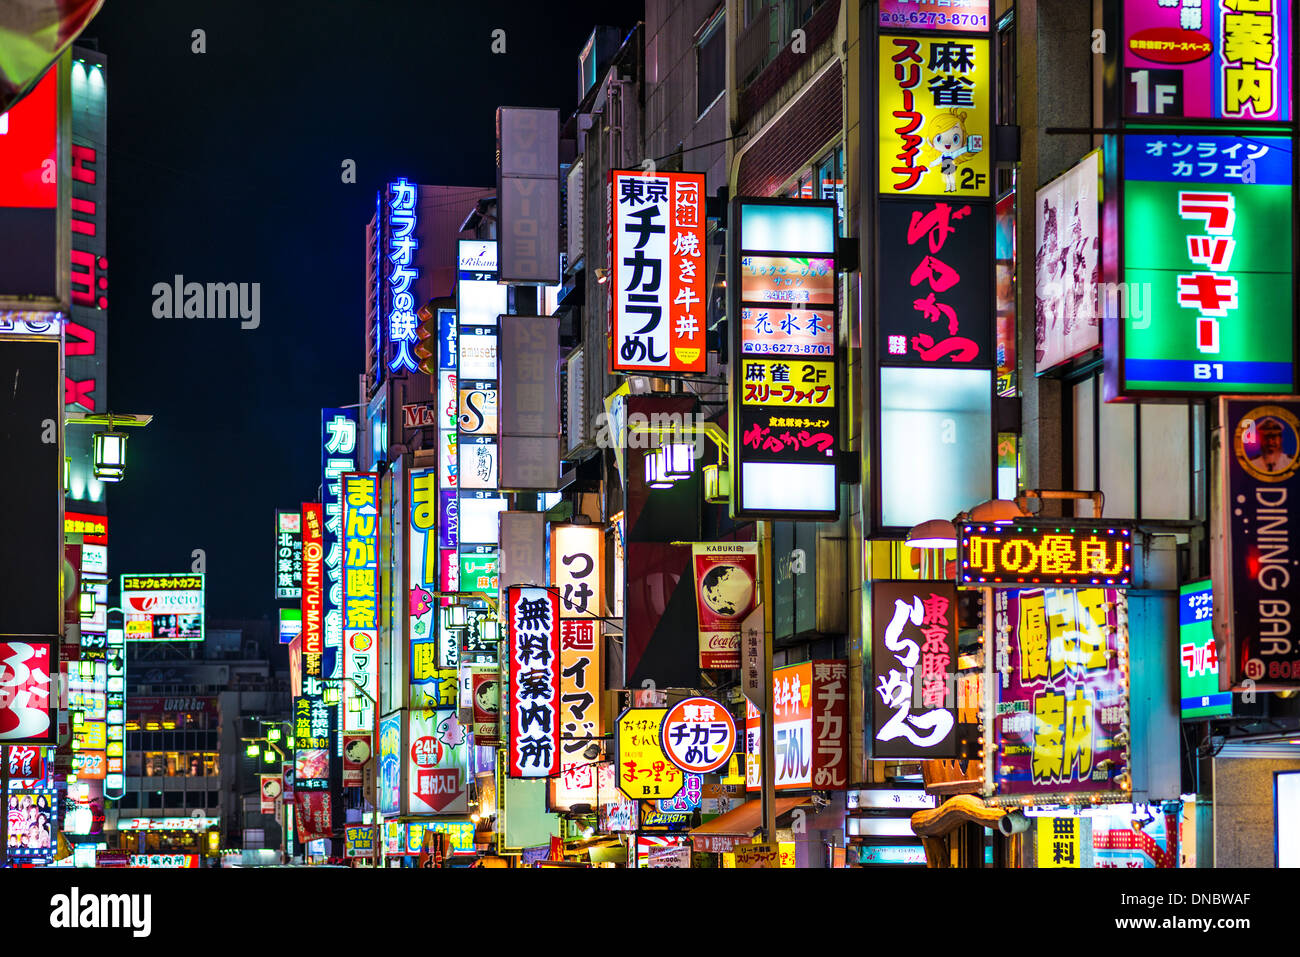 Shinjuku Tokyo Japan Night City Stock Photo Alamy